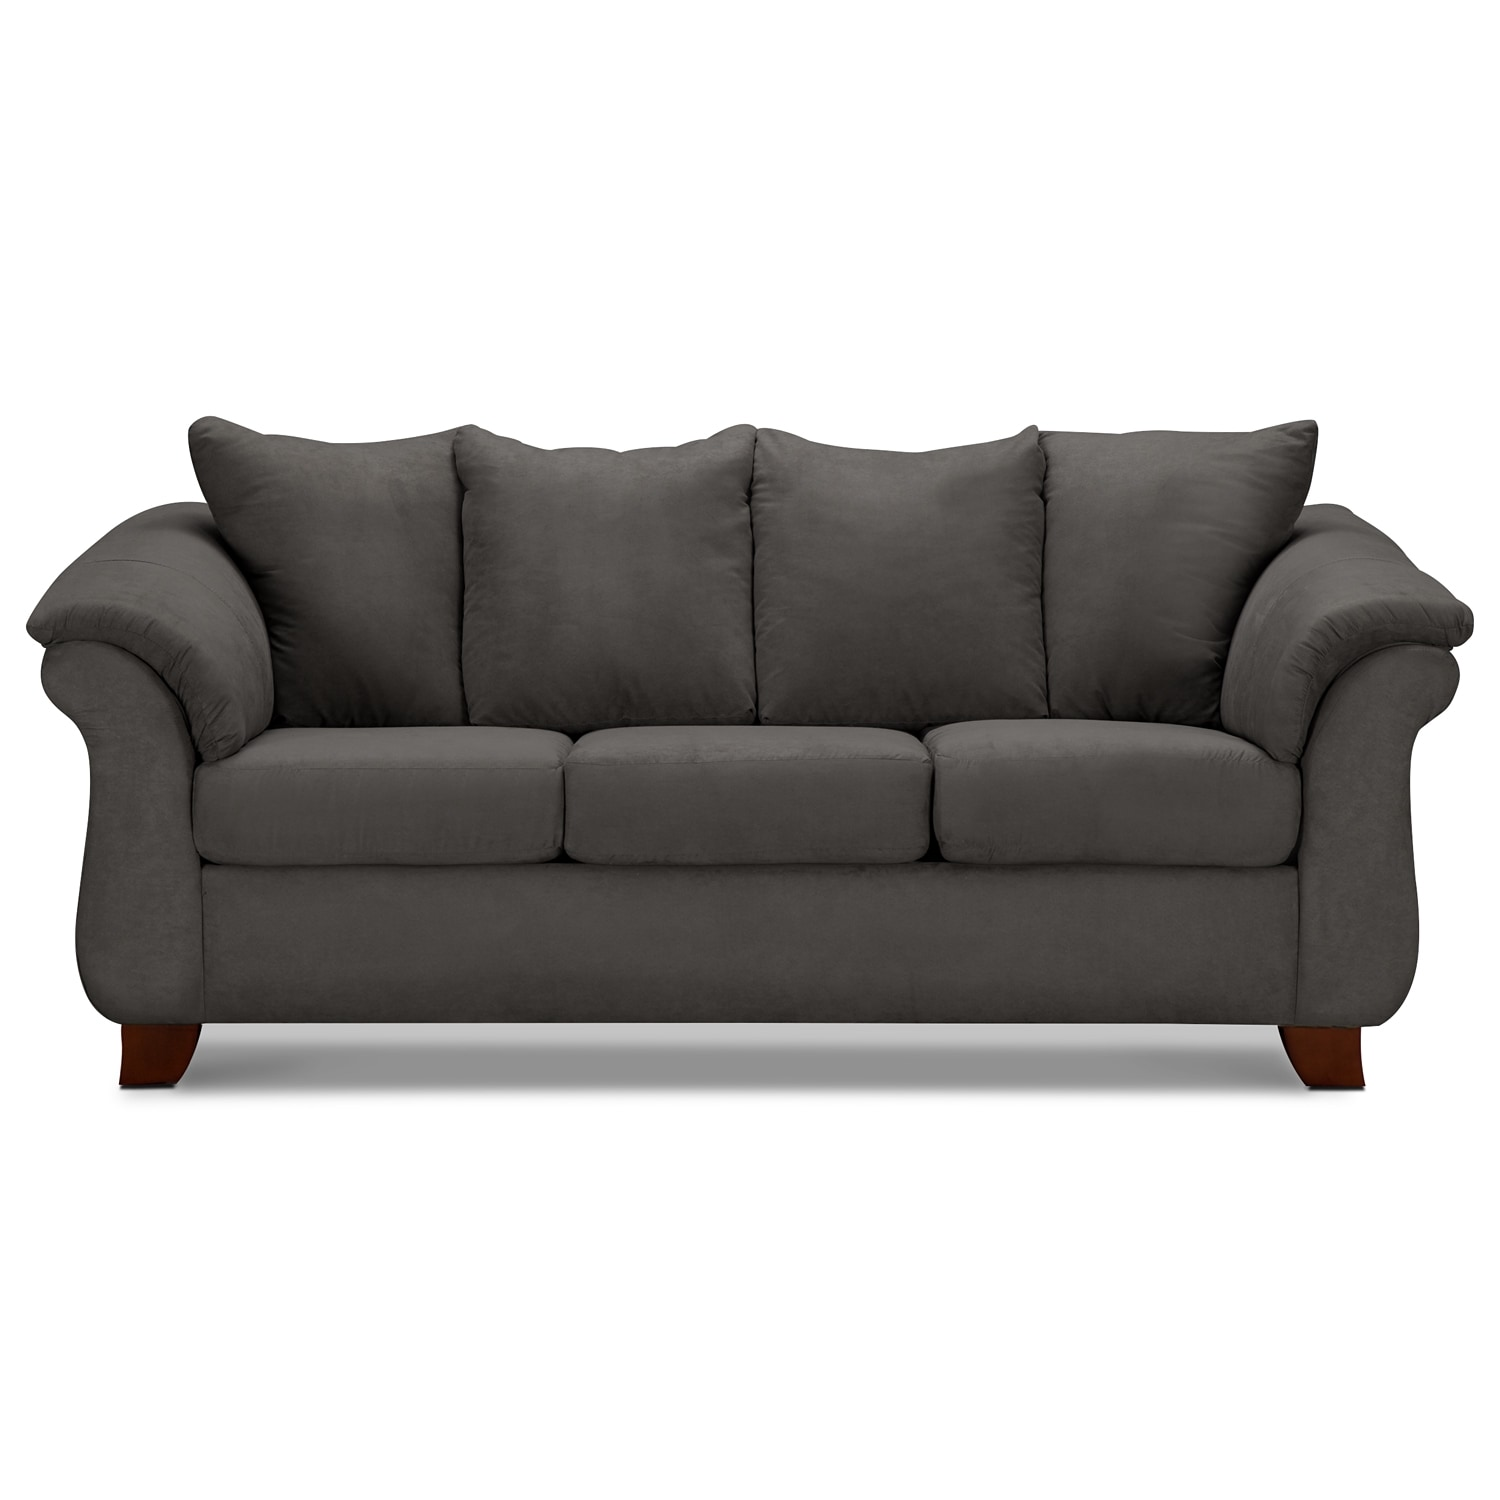 Furniture of america chaves contemporary 3 piece sofa set - Click To Change Image